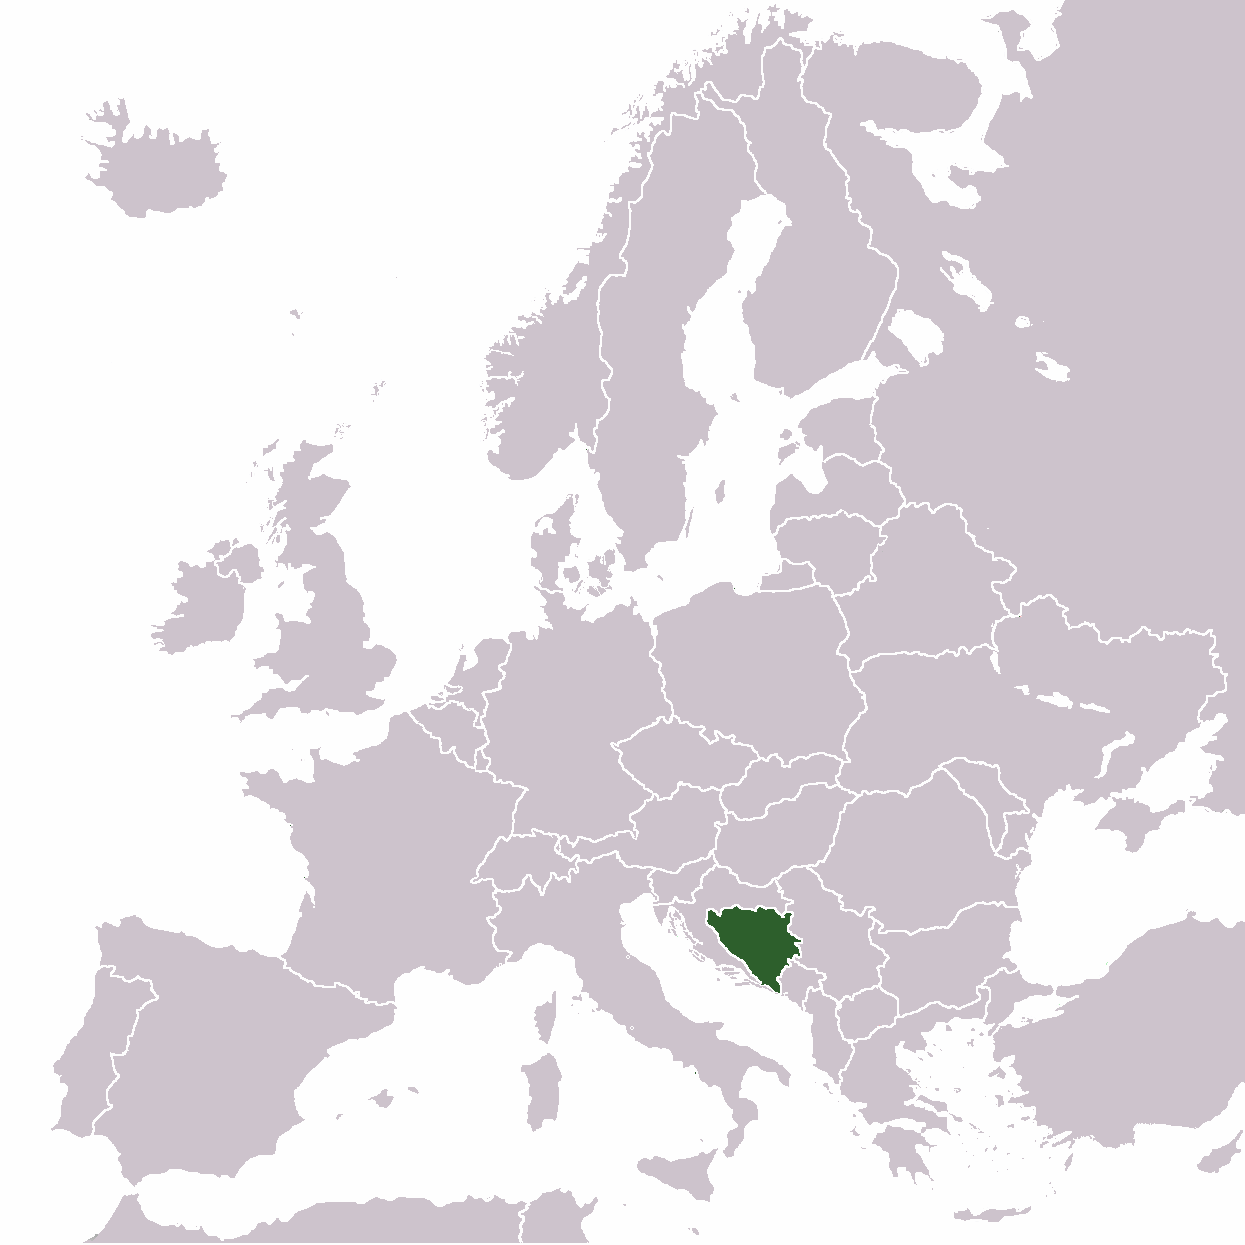 Europe Location Bh Mapsofnet